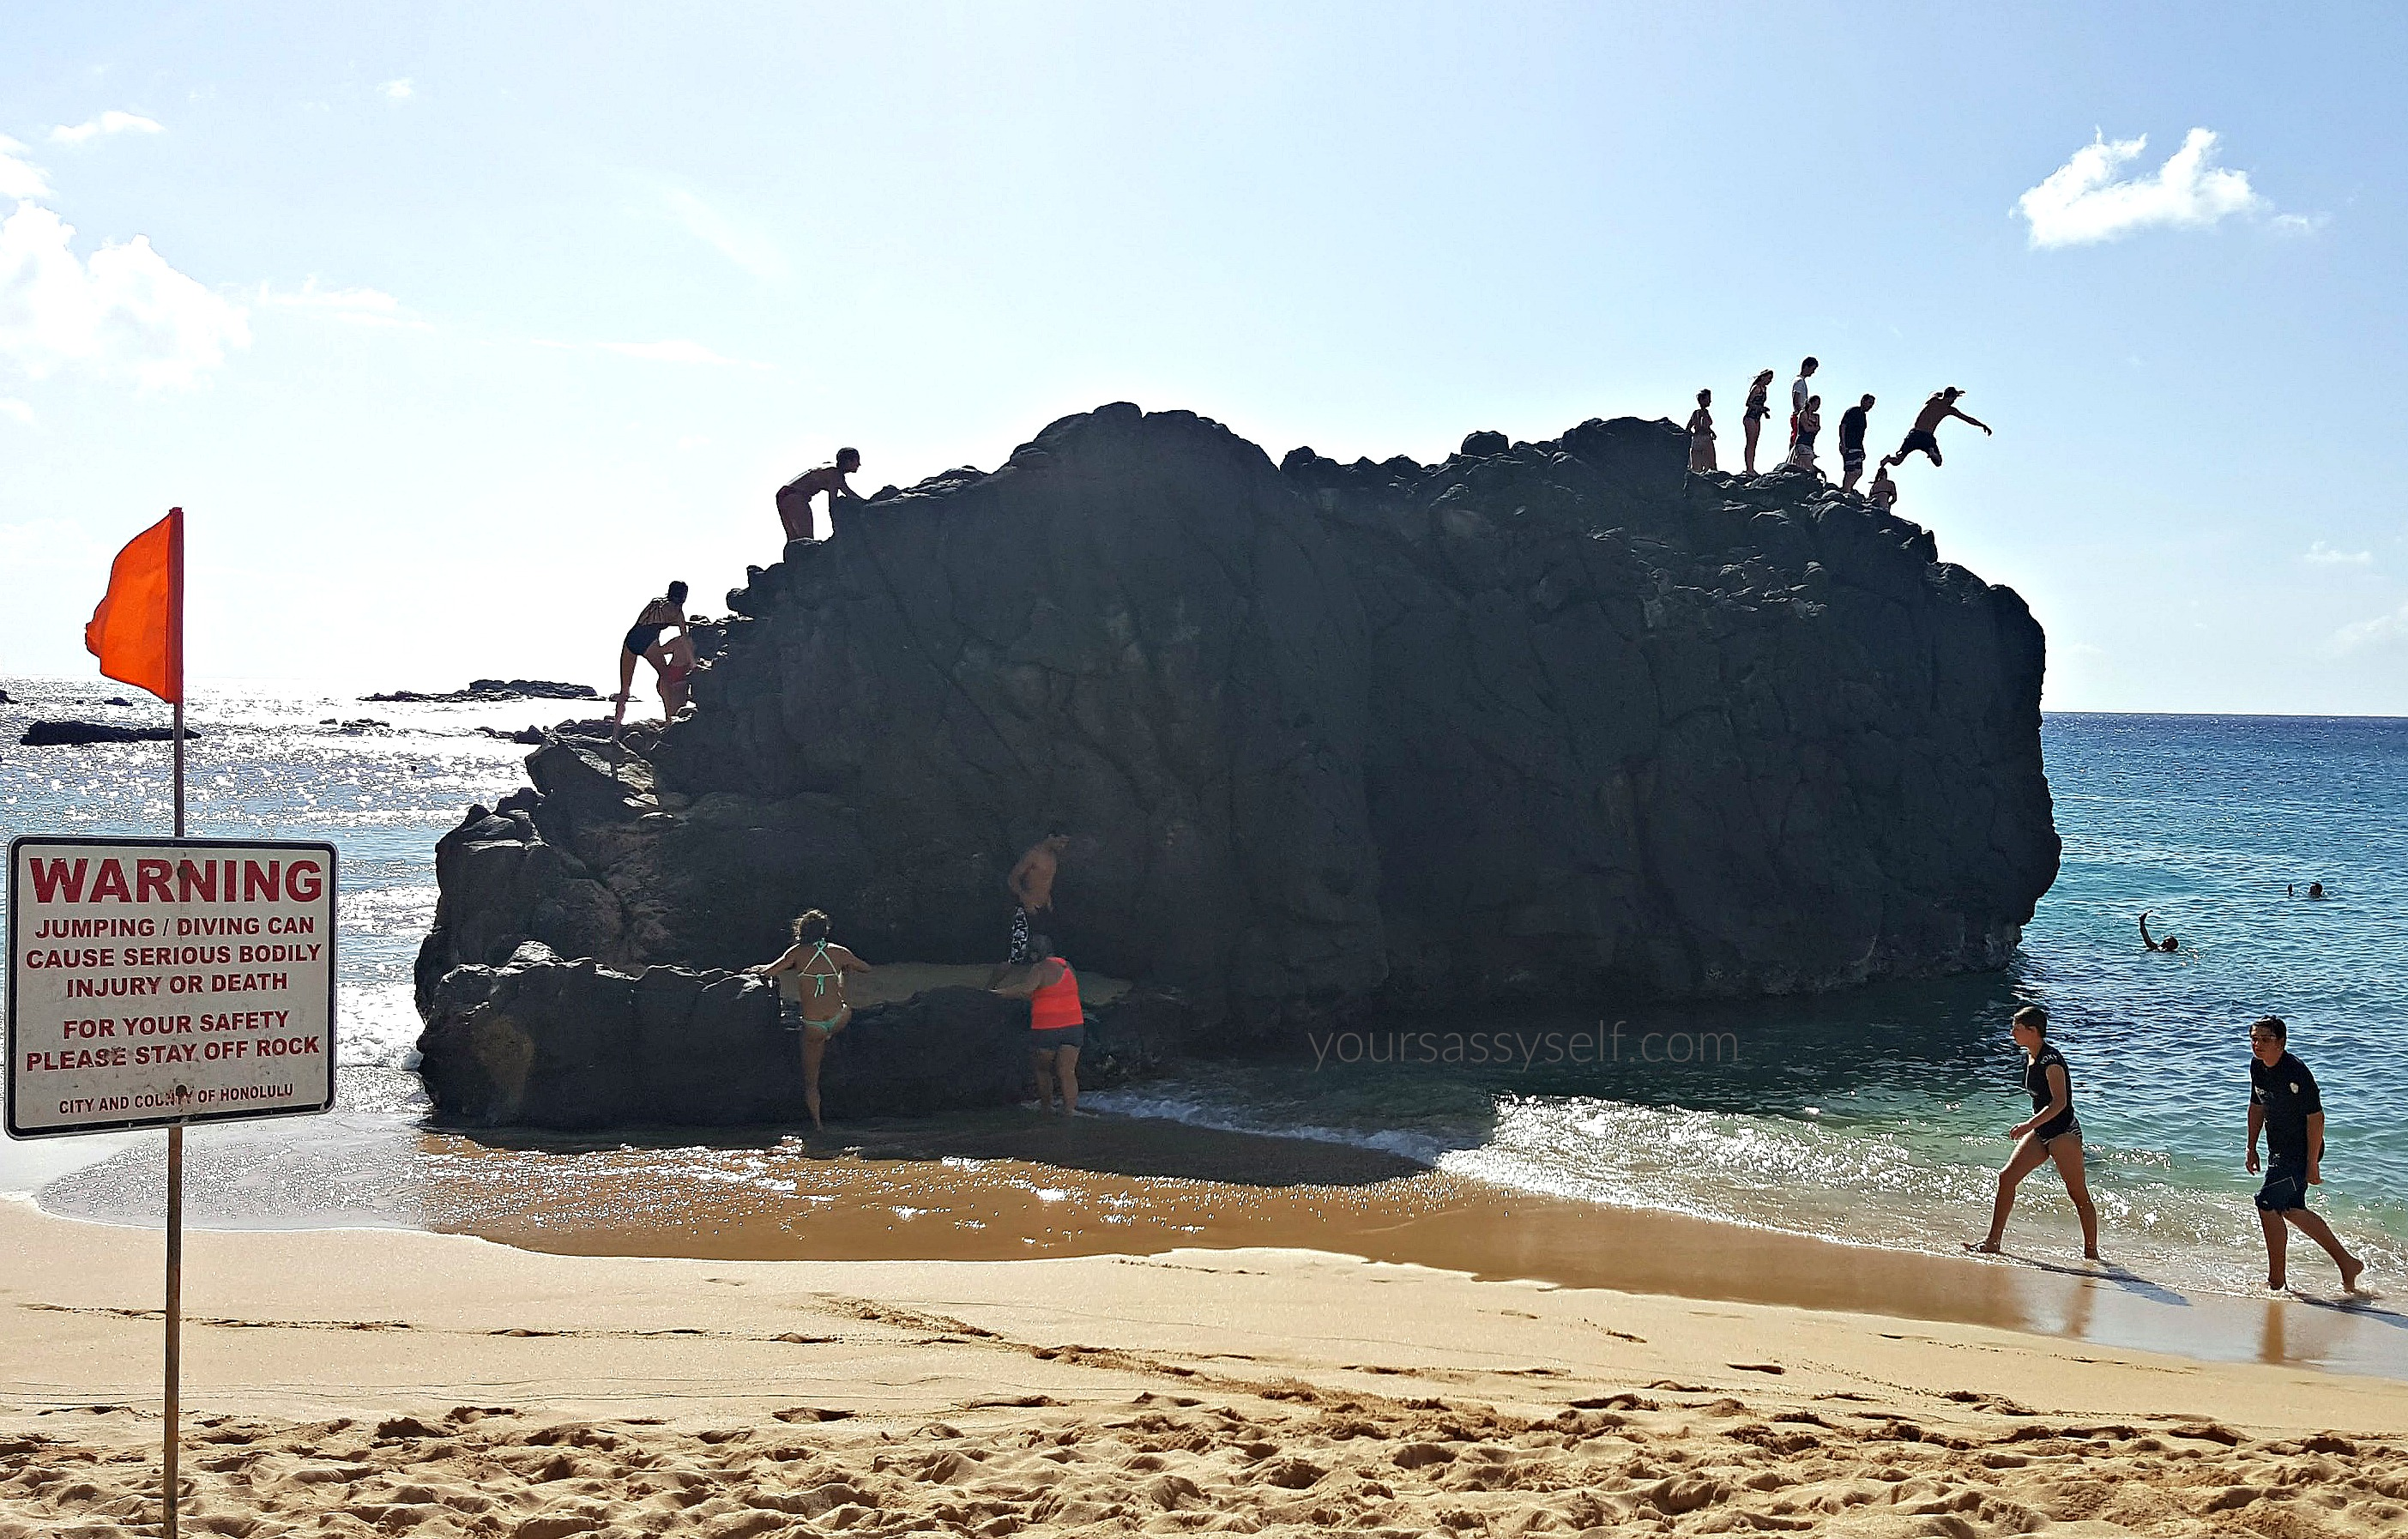 People Lined Up to Jump of Waimea Bay Rock - yoursassyself.com